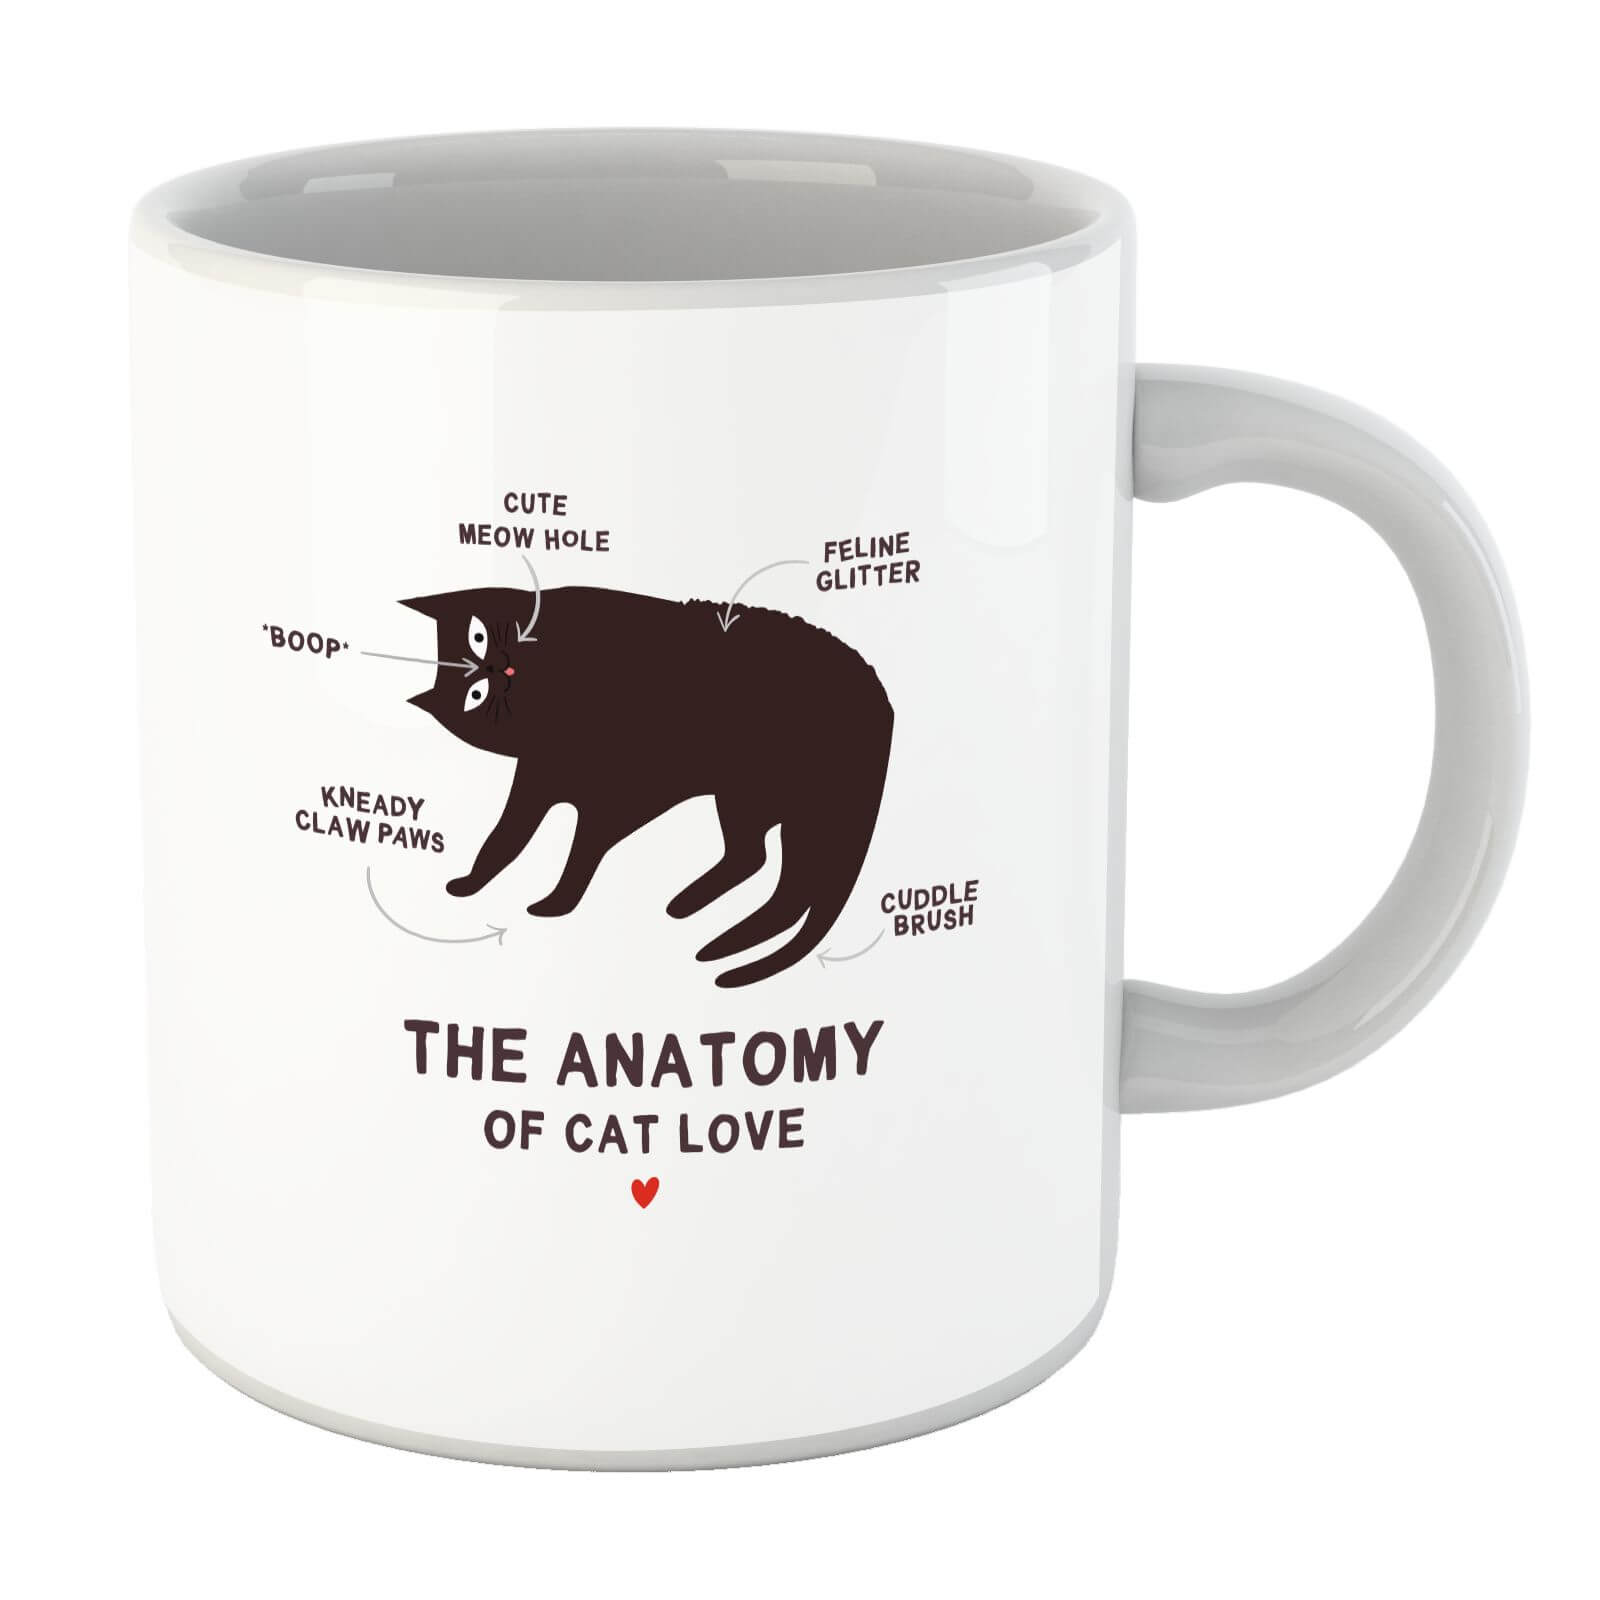 The Anatomy Of Cat Love Mug